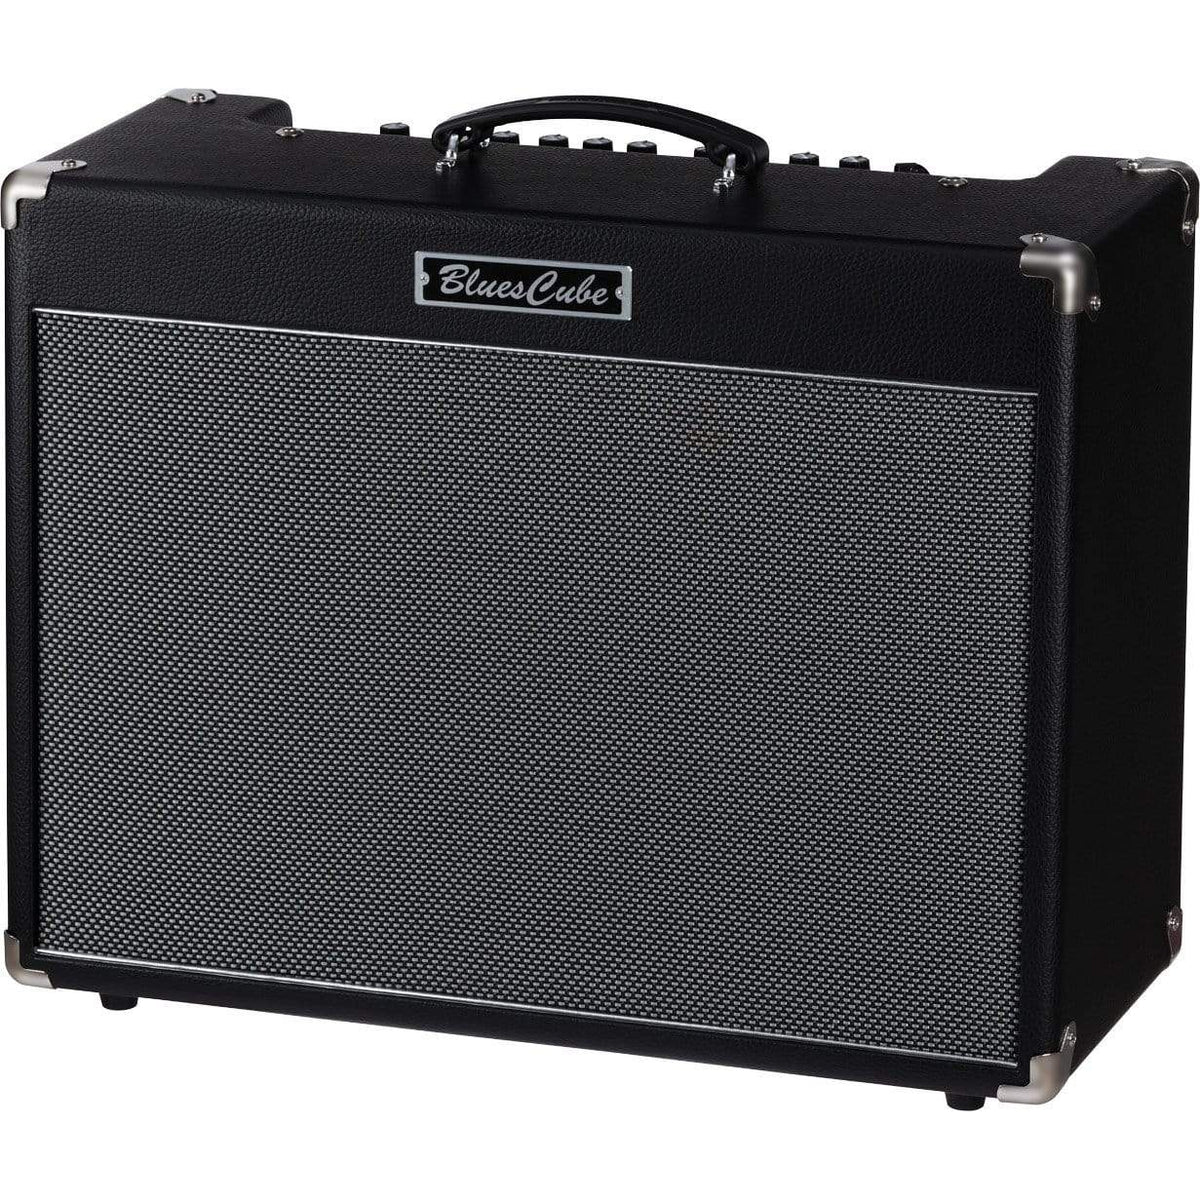 Roland BC-Artist Blues Cube Combo Amplifier